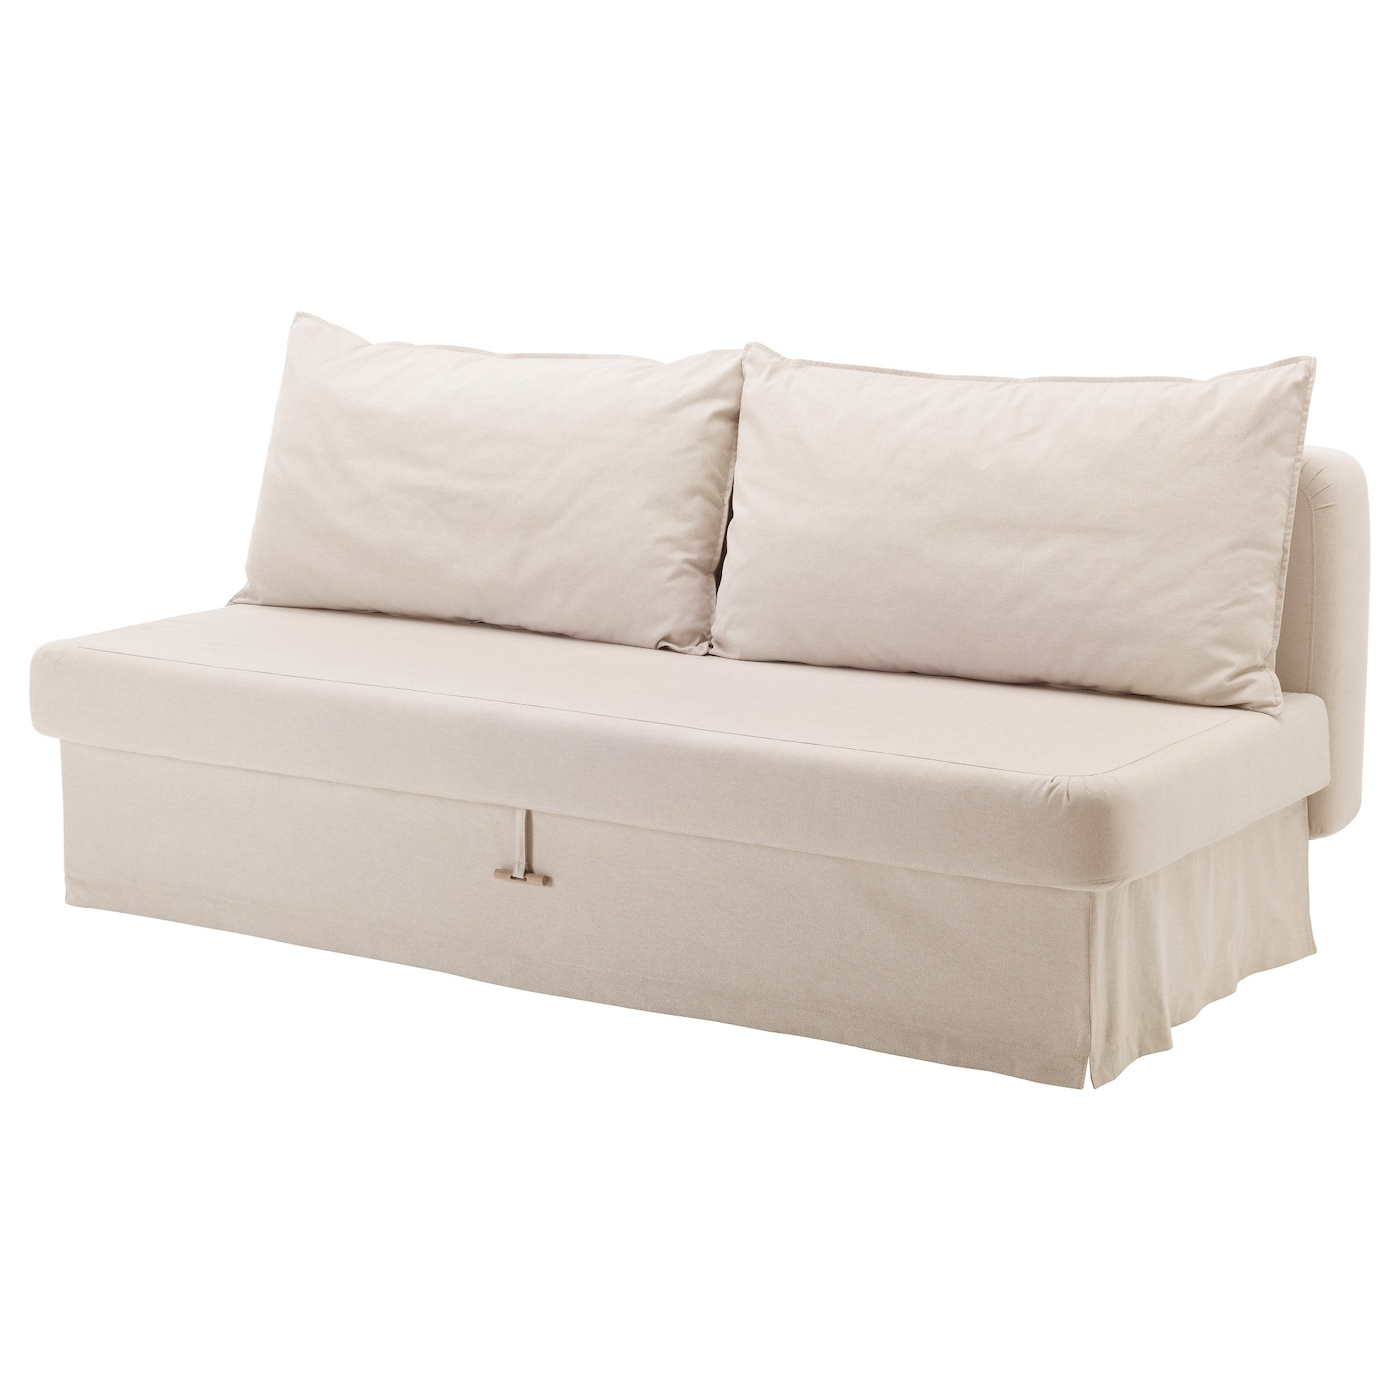 Himmene three seat sofa bed lofallet beige ikea for Sofa bed 91762